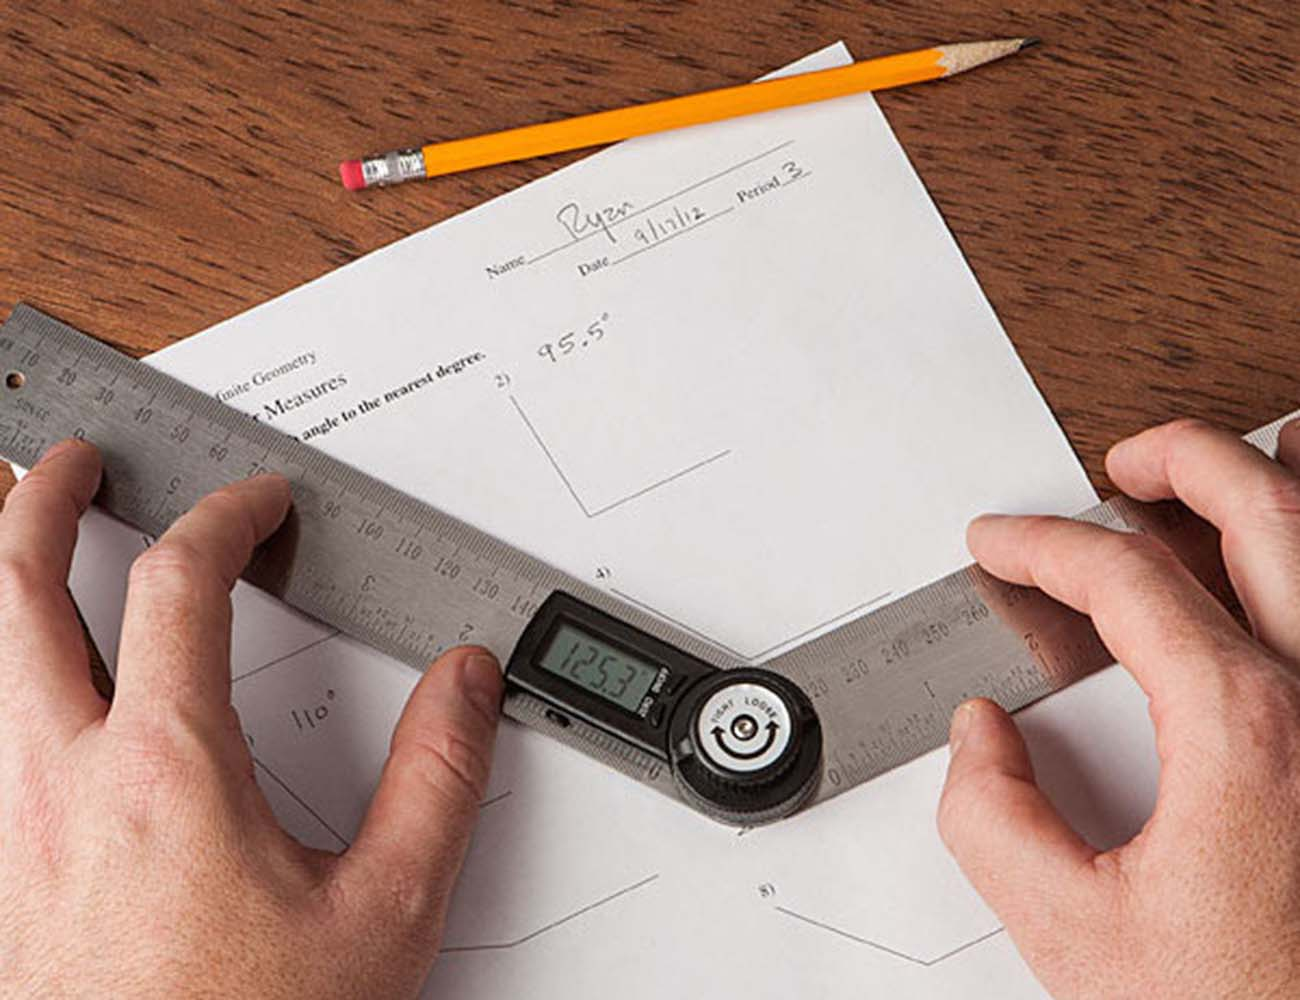 Digital+Protractor+%26%238211%3B+Take+The+Guesswork+Out+Of+Measurement+Forever